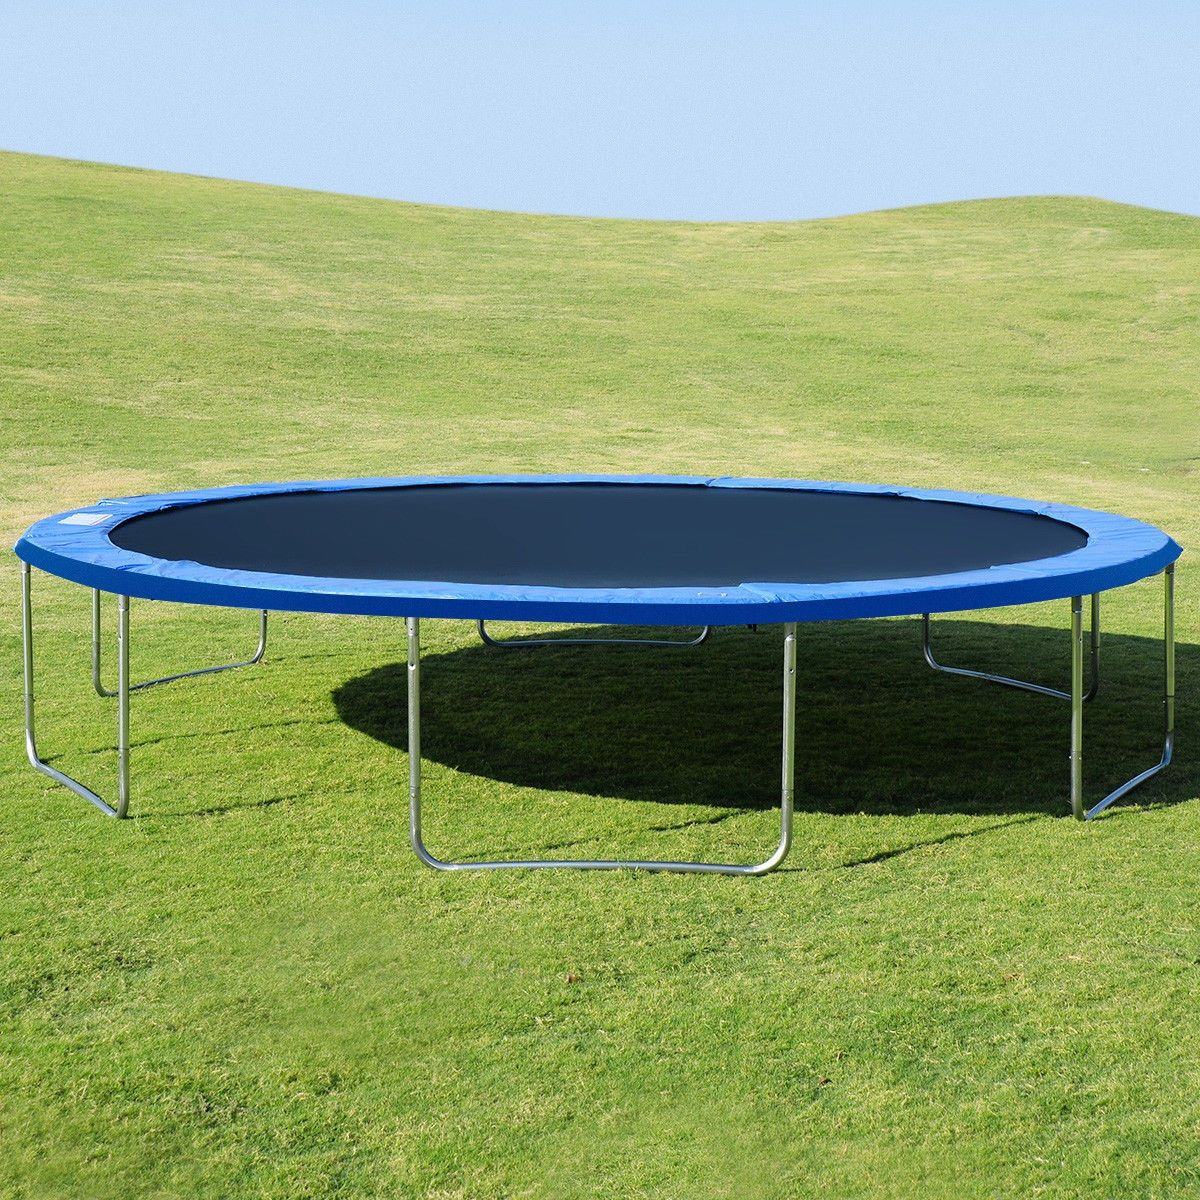 16 trampoline combo with safety enclosure net spring pad